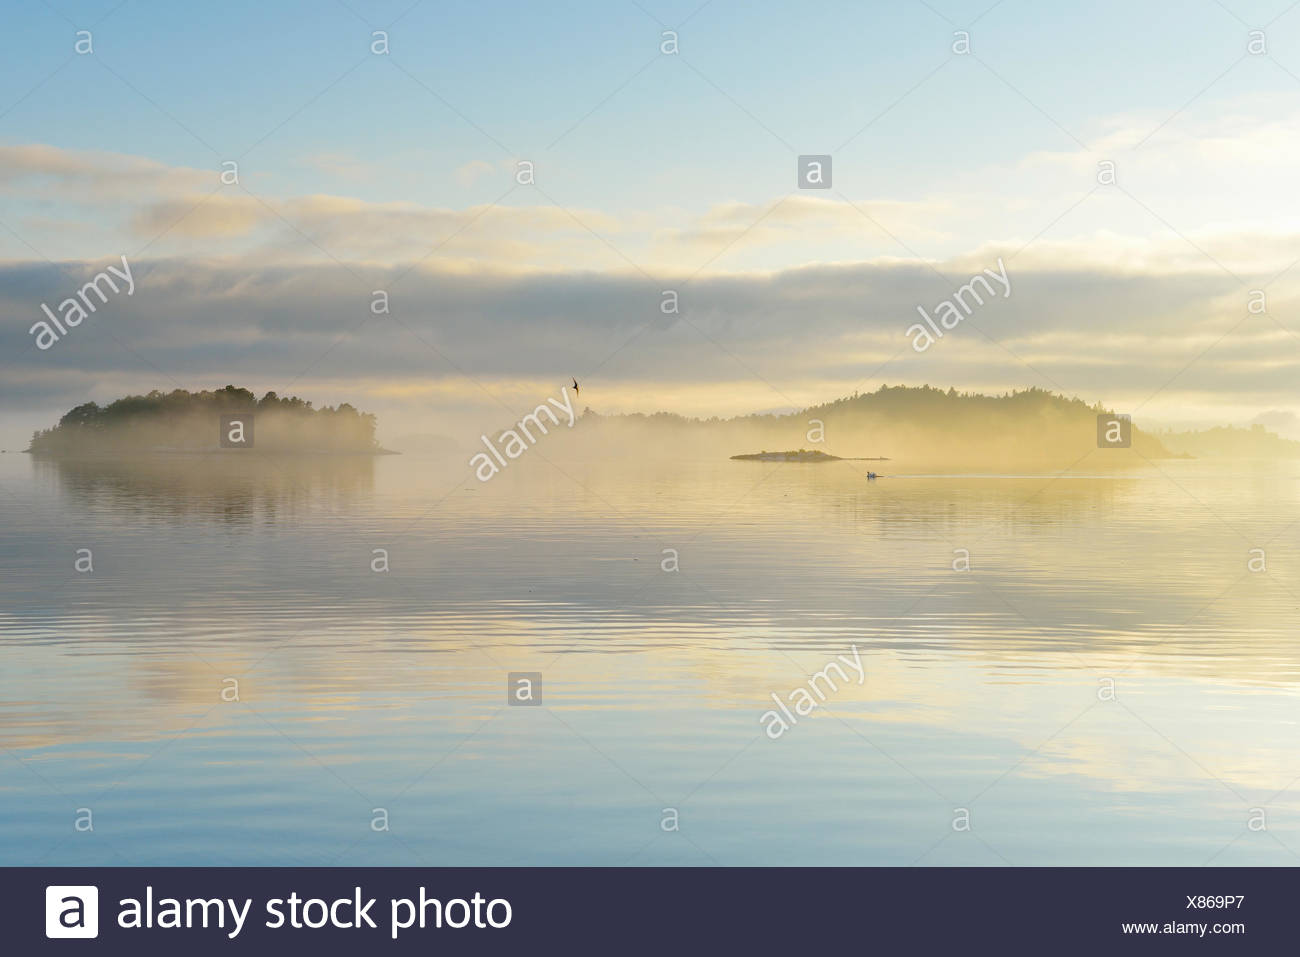 Sweden, Stockholm Archipelago, Uppland, Lidingo, View of sea and islands at dawn - Stock Image